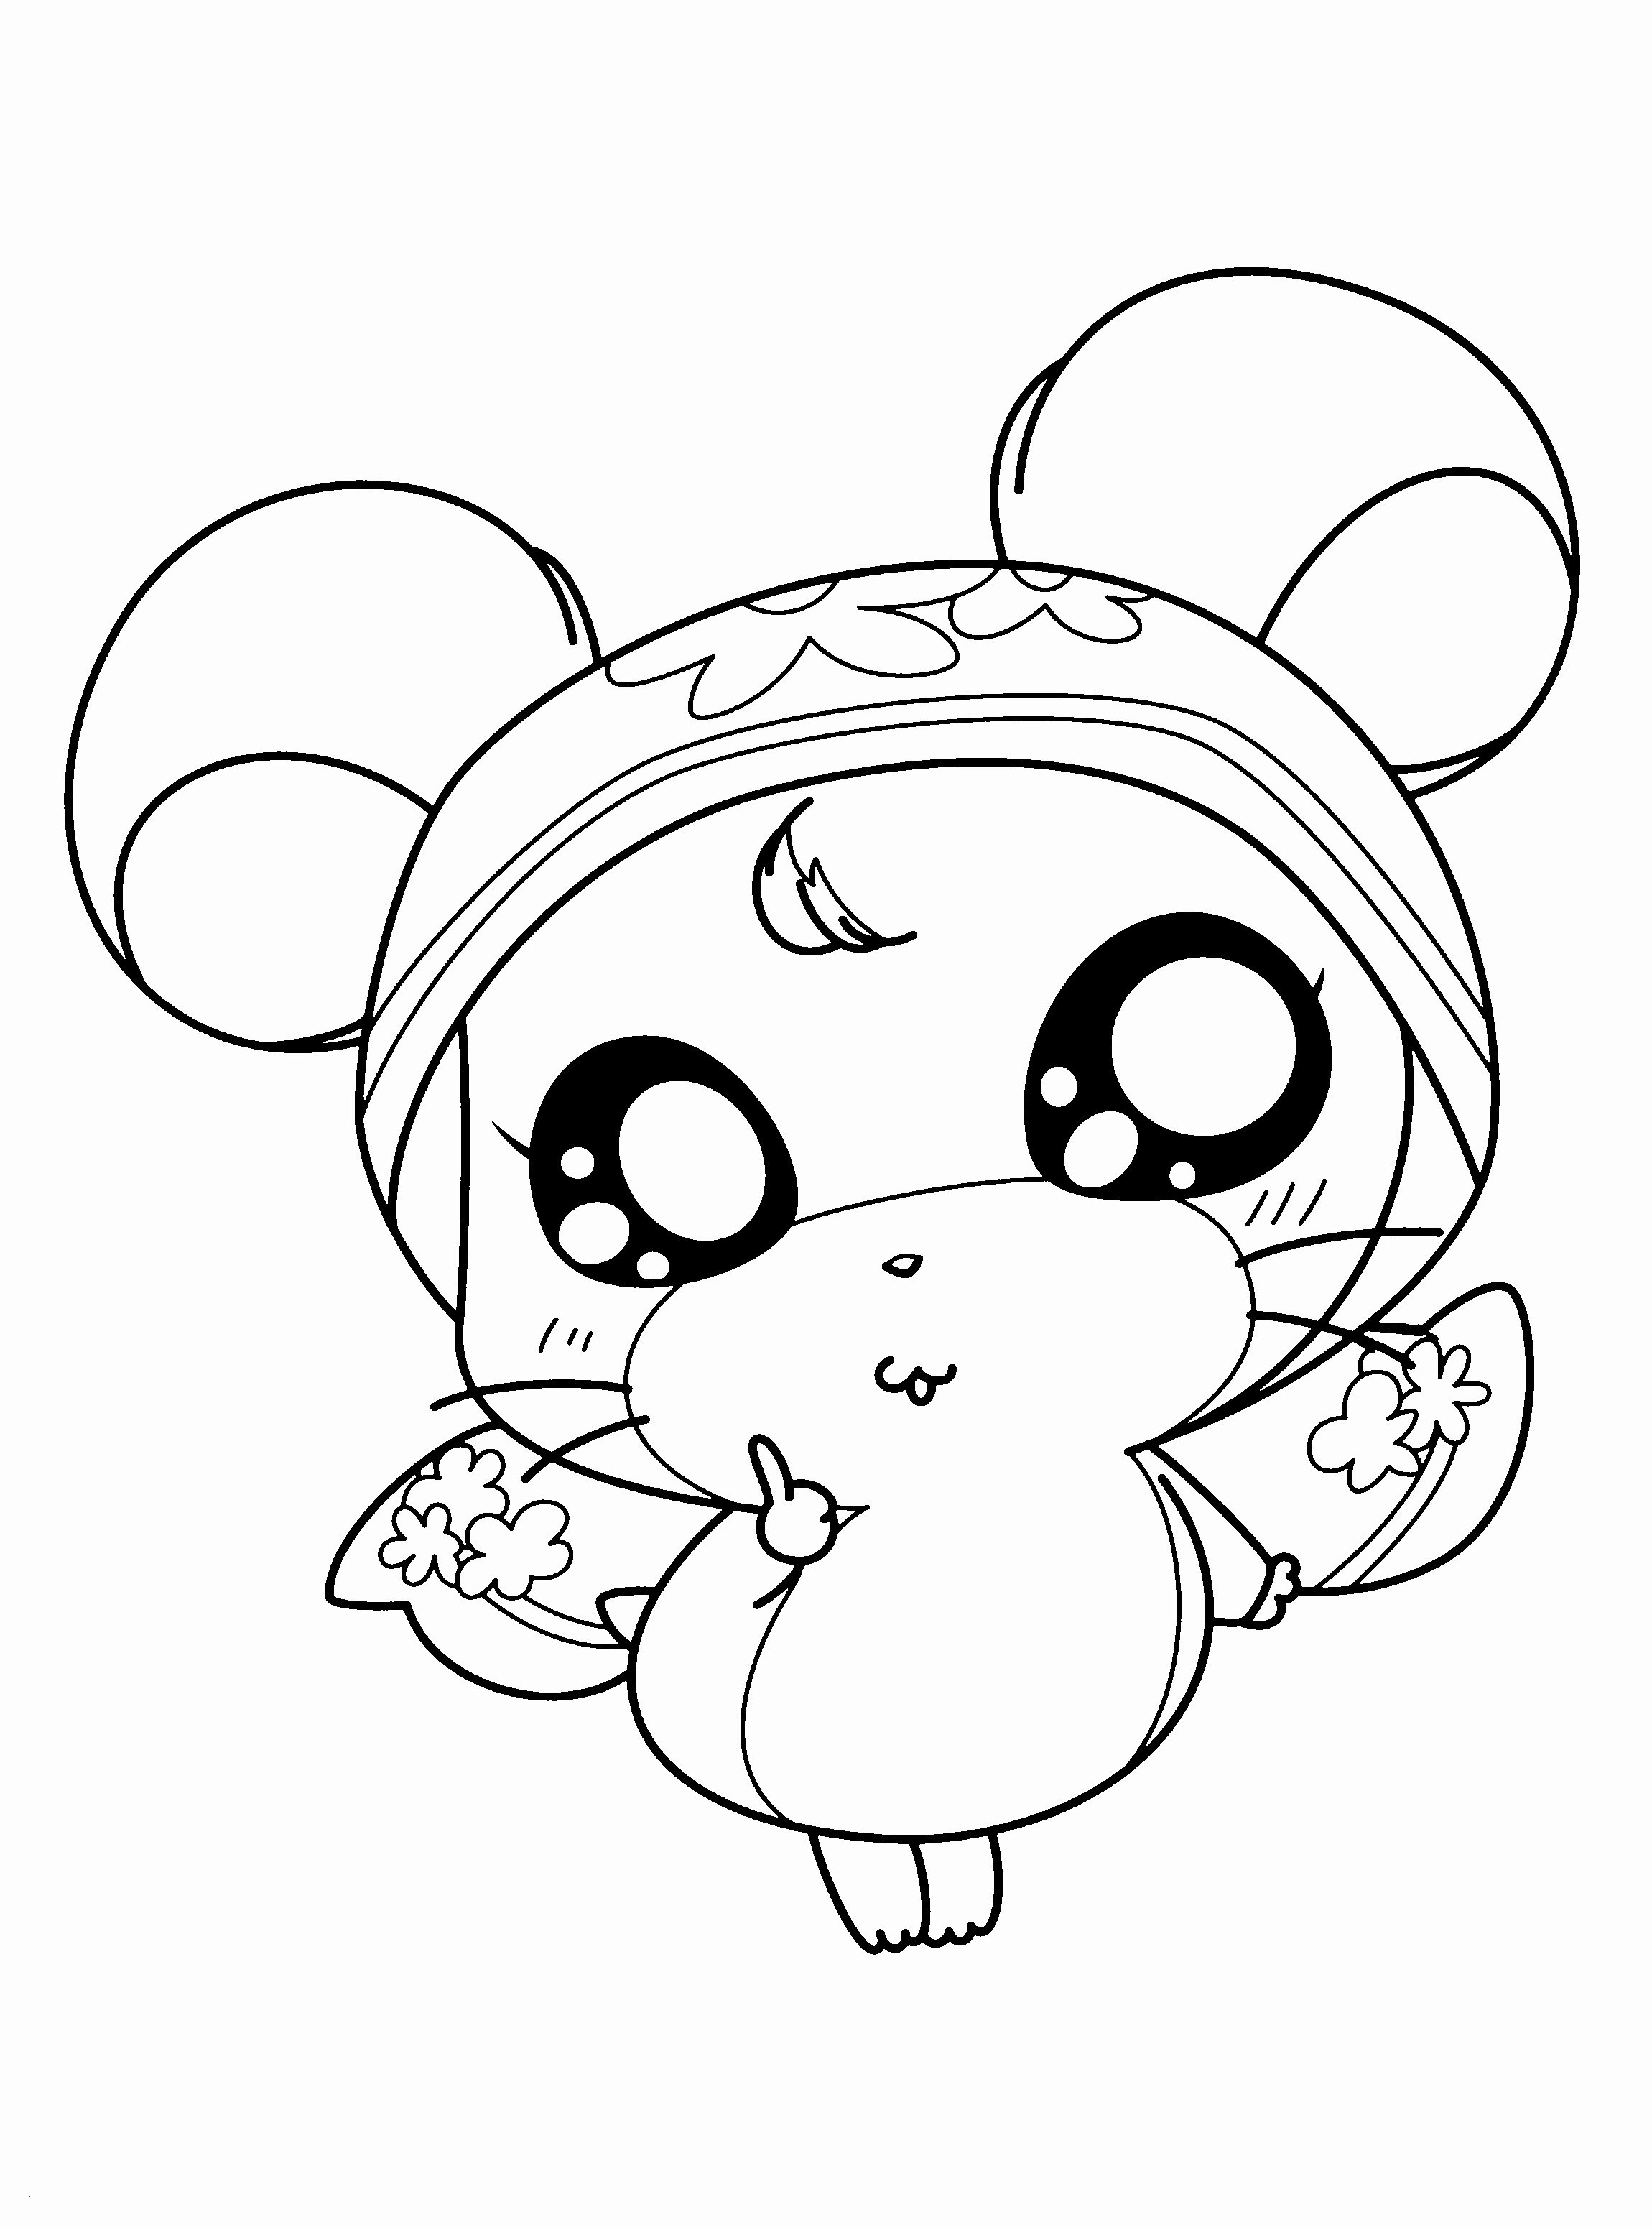 Cute Pig Coloring Pages  Download 17r - Save it to your computer